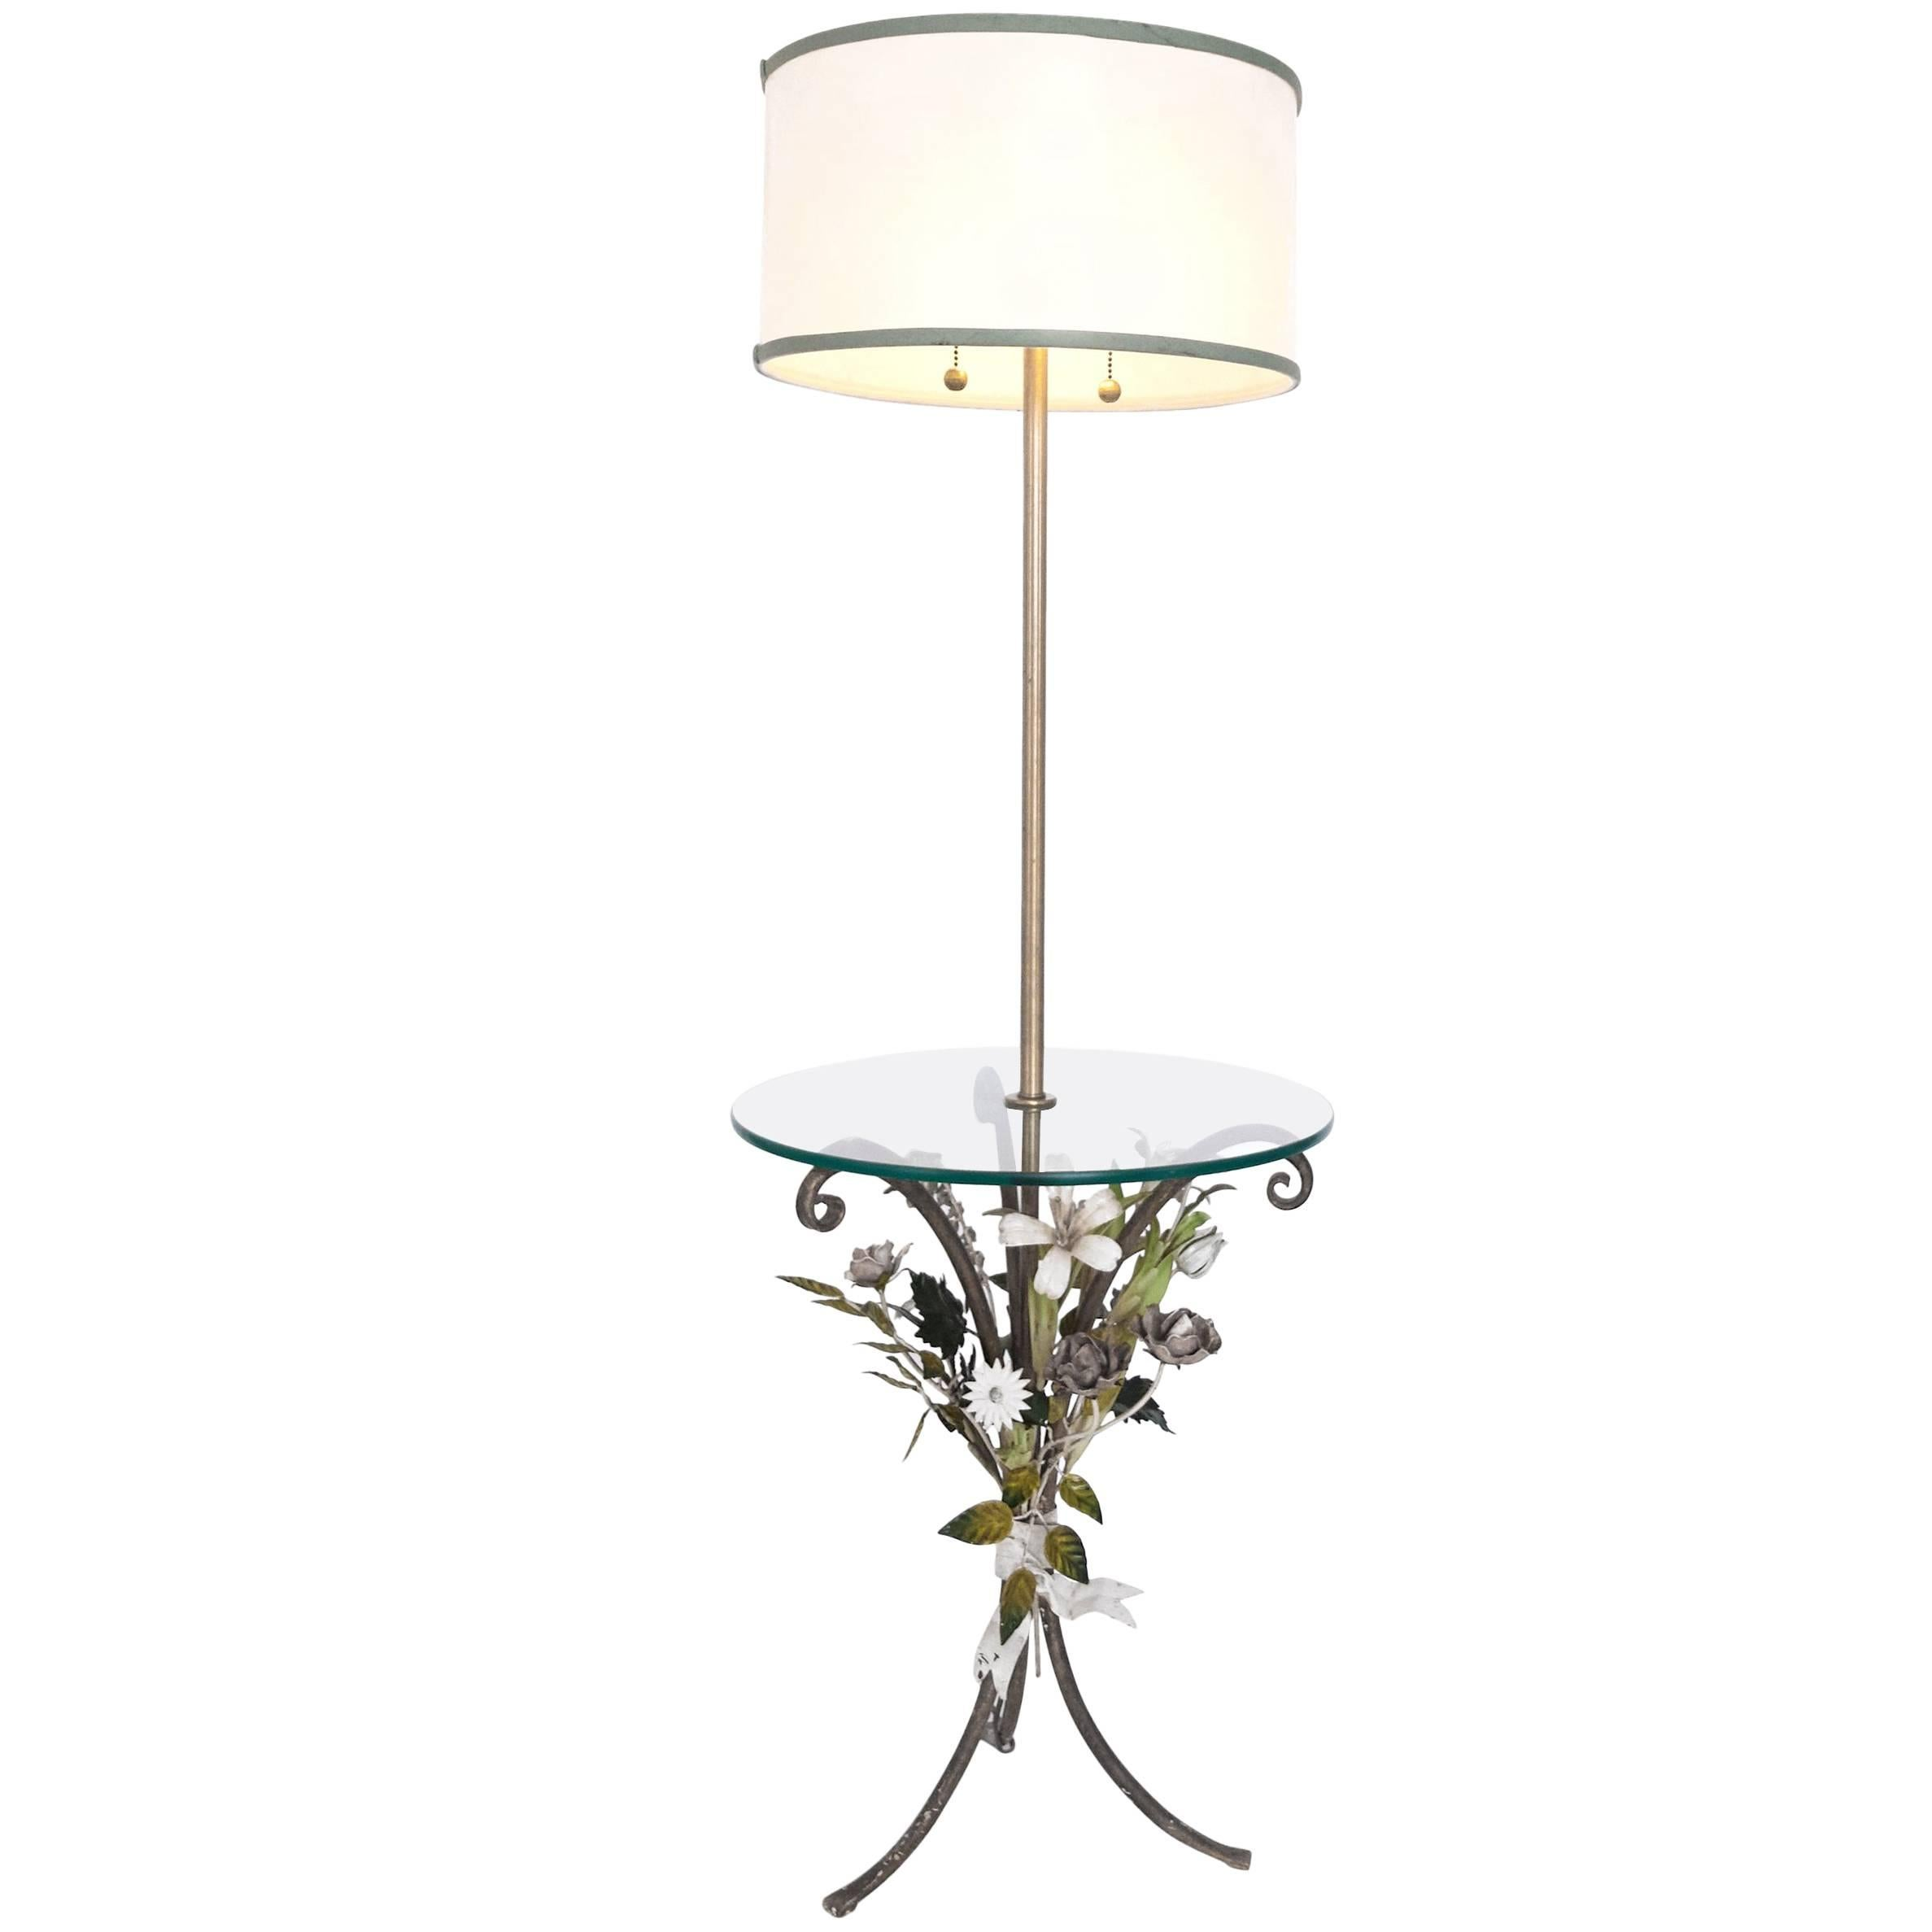 Floral Motif Tole Floor L& with Table by Marbro Made in Italy 1950s  sc 1 st  1stDibs & Hollywood Regency Lighting u0026 Light Fixtures - 1480 For Sale at ... azcodes.com